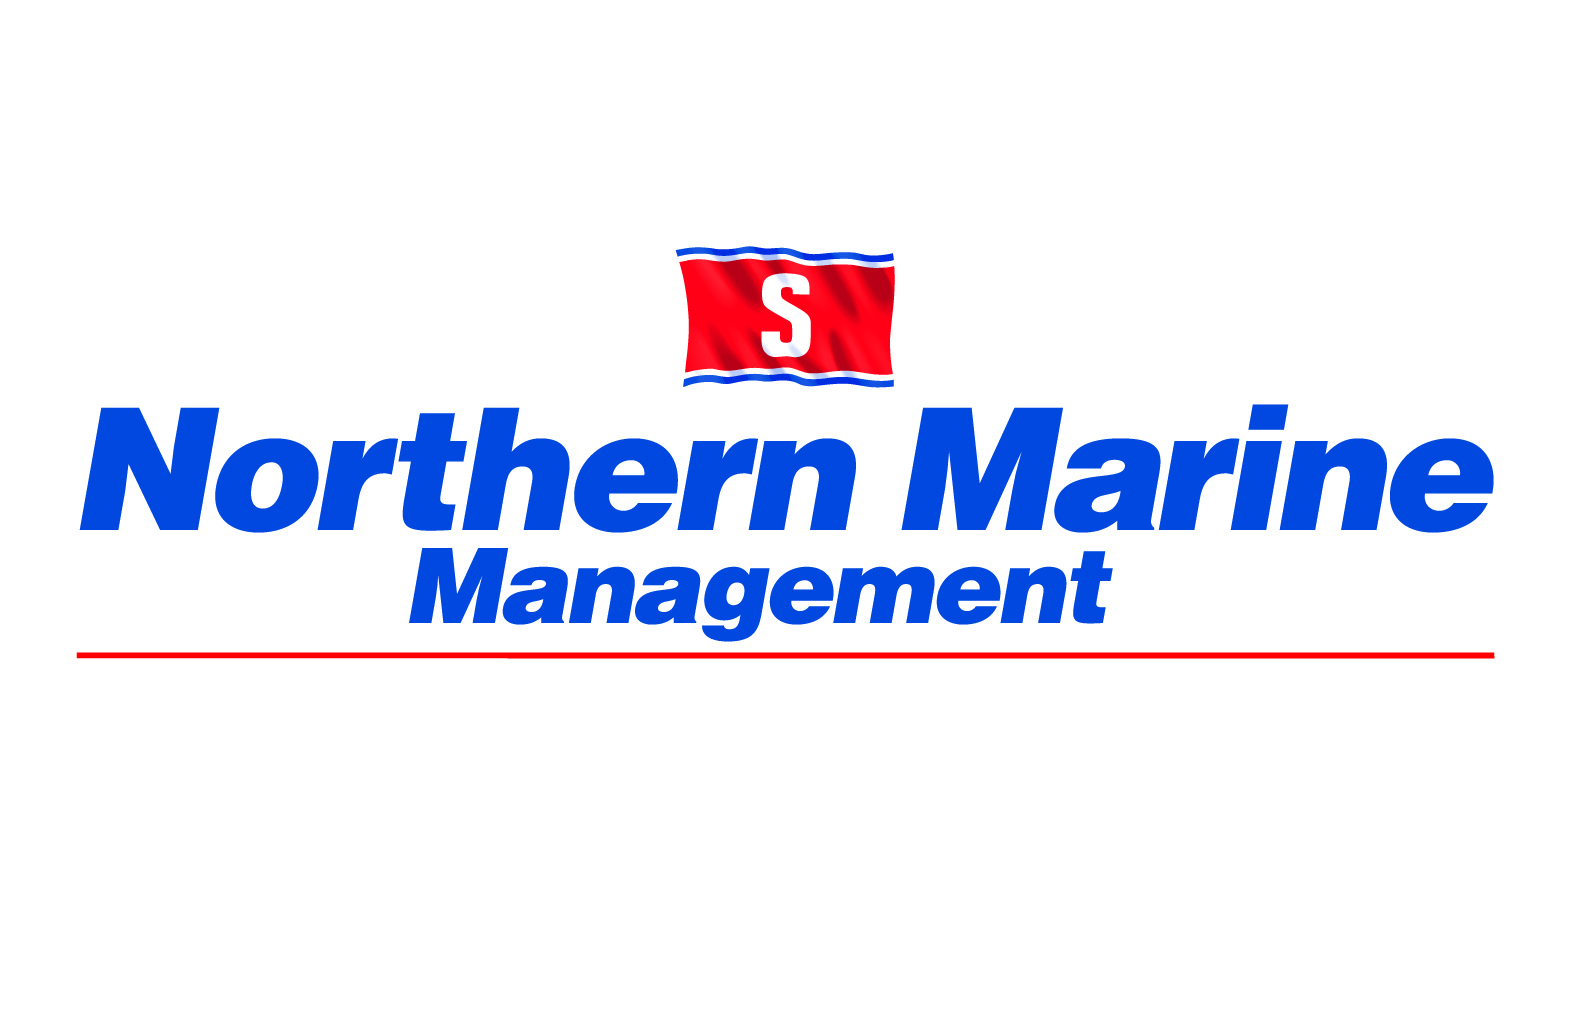 Northern Marine Management